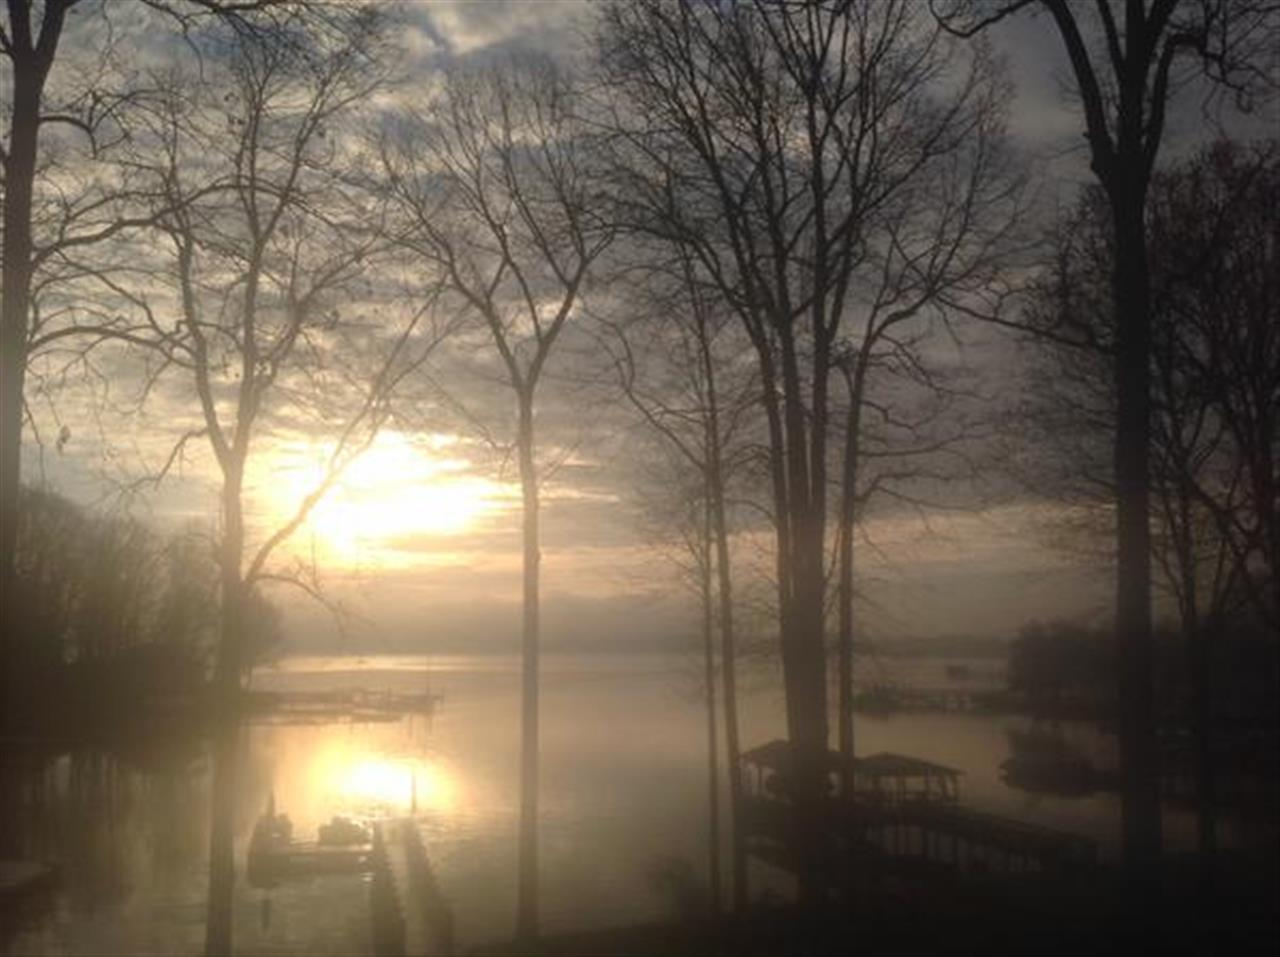 The morning mist over Lake Norman in Denver NC #LeadingRElocal